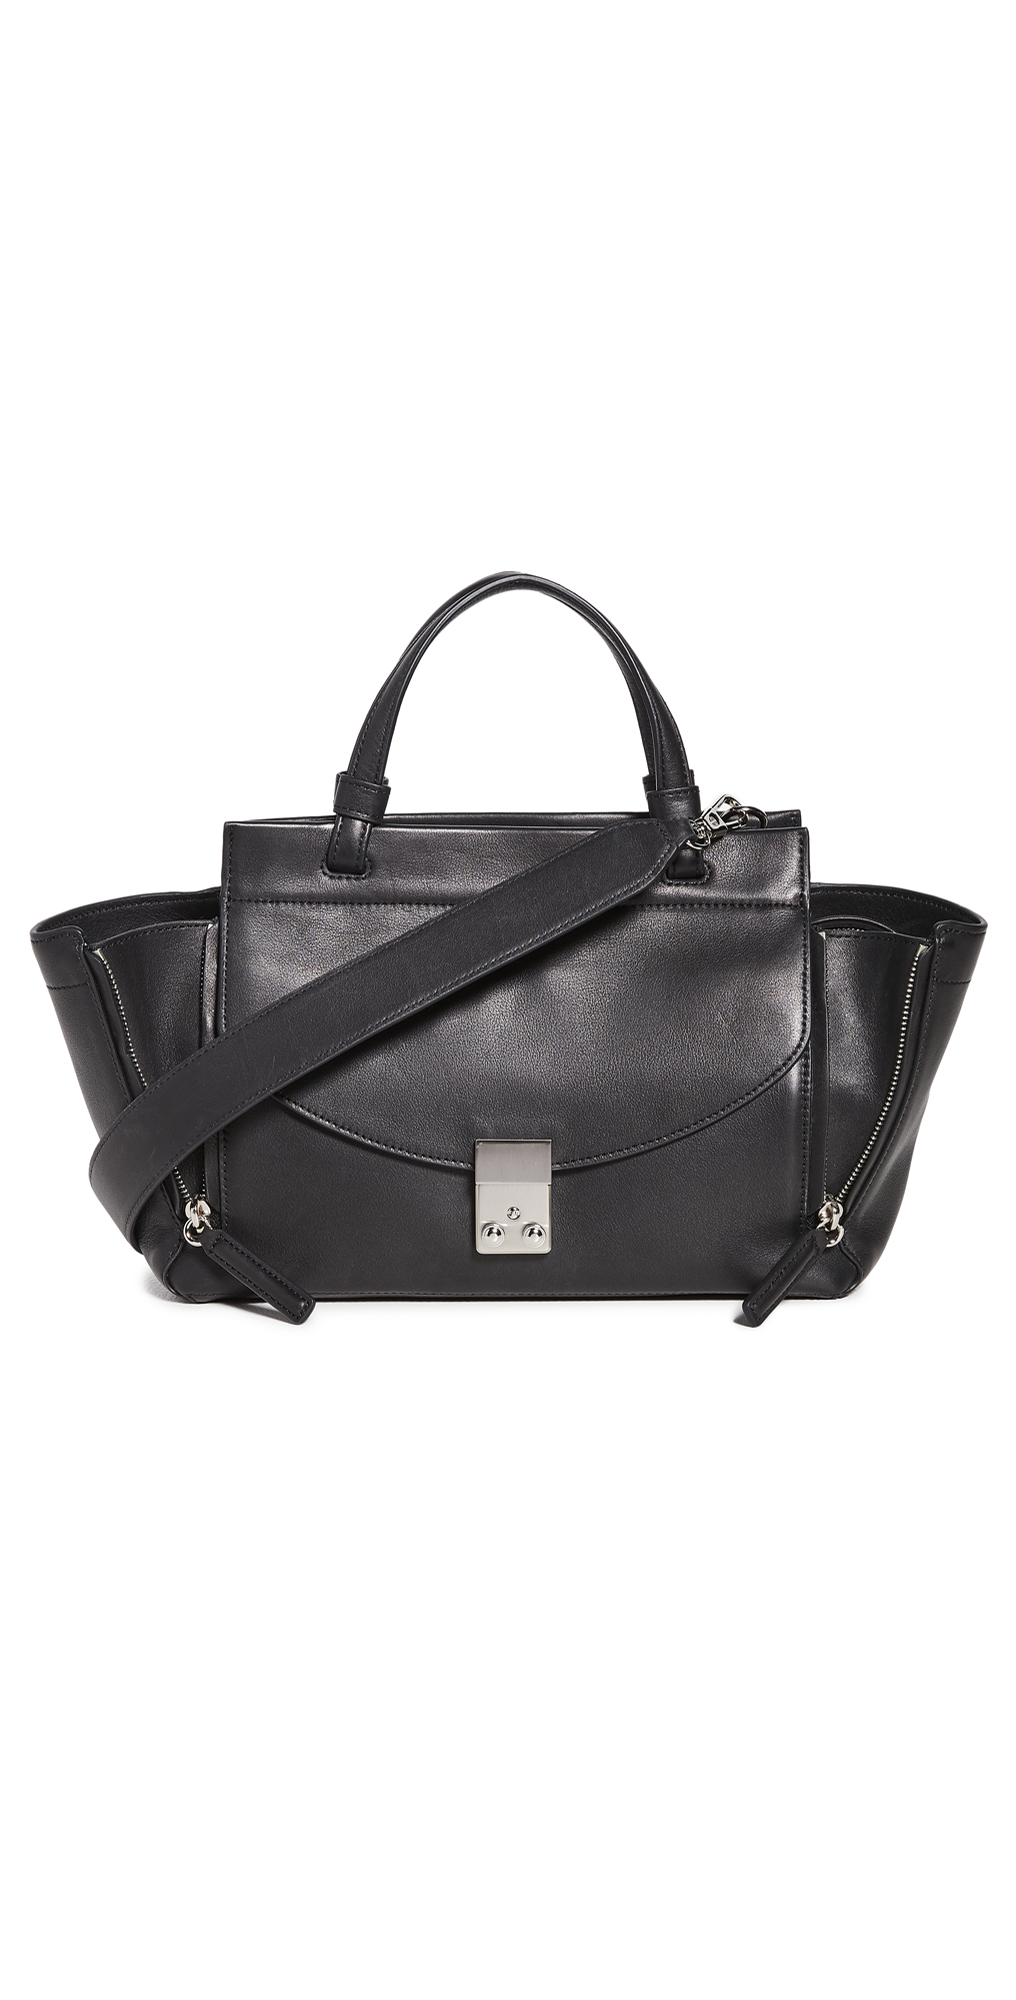 3.1 Phillip Lim PASHLI SMALL SOFT MINI SATCHEL